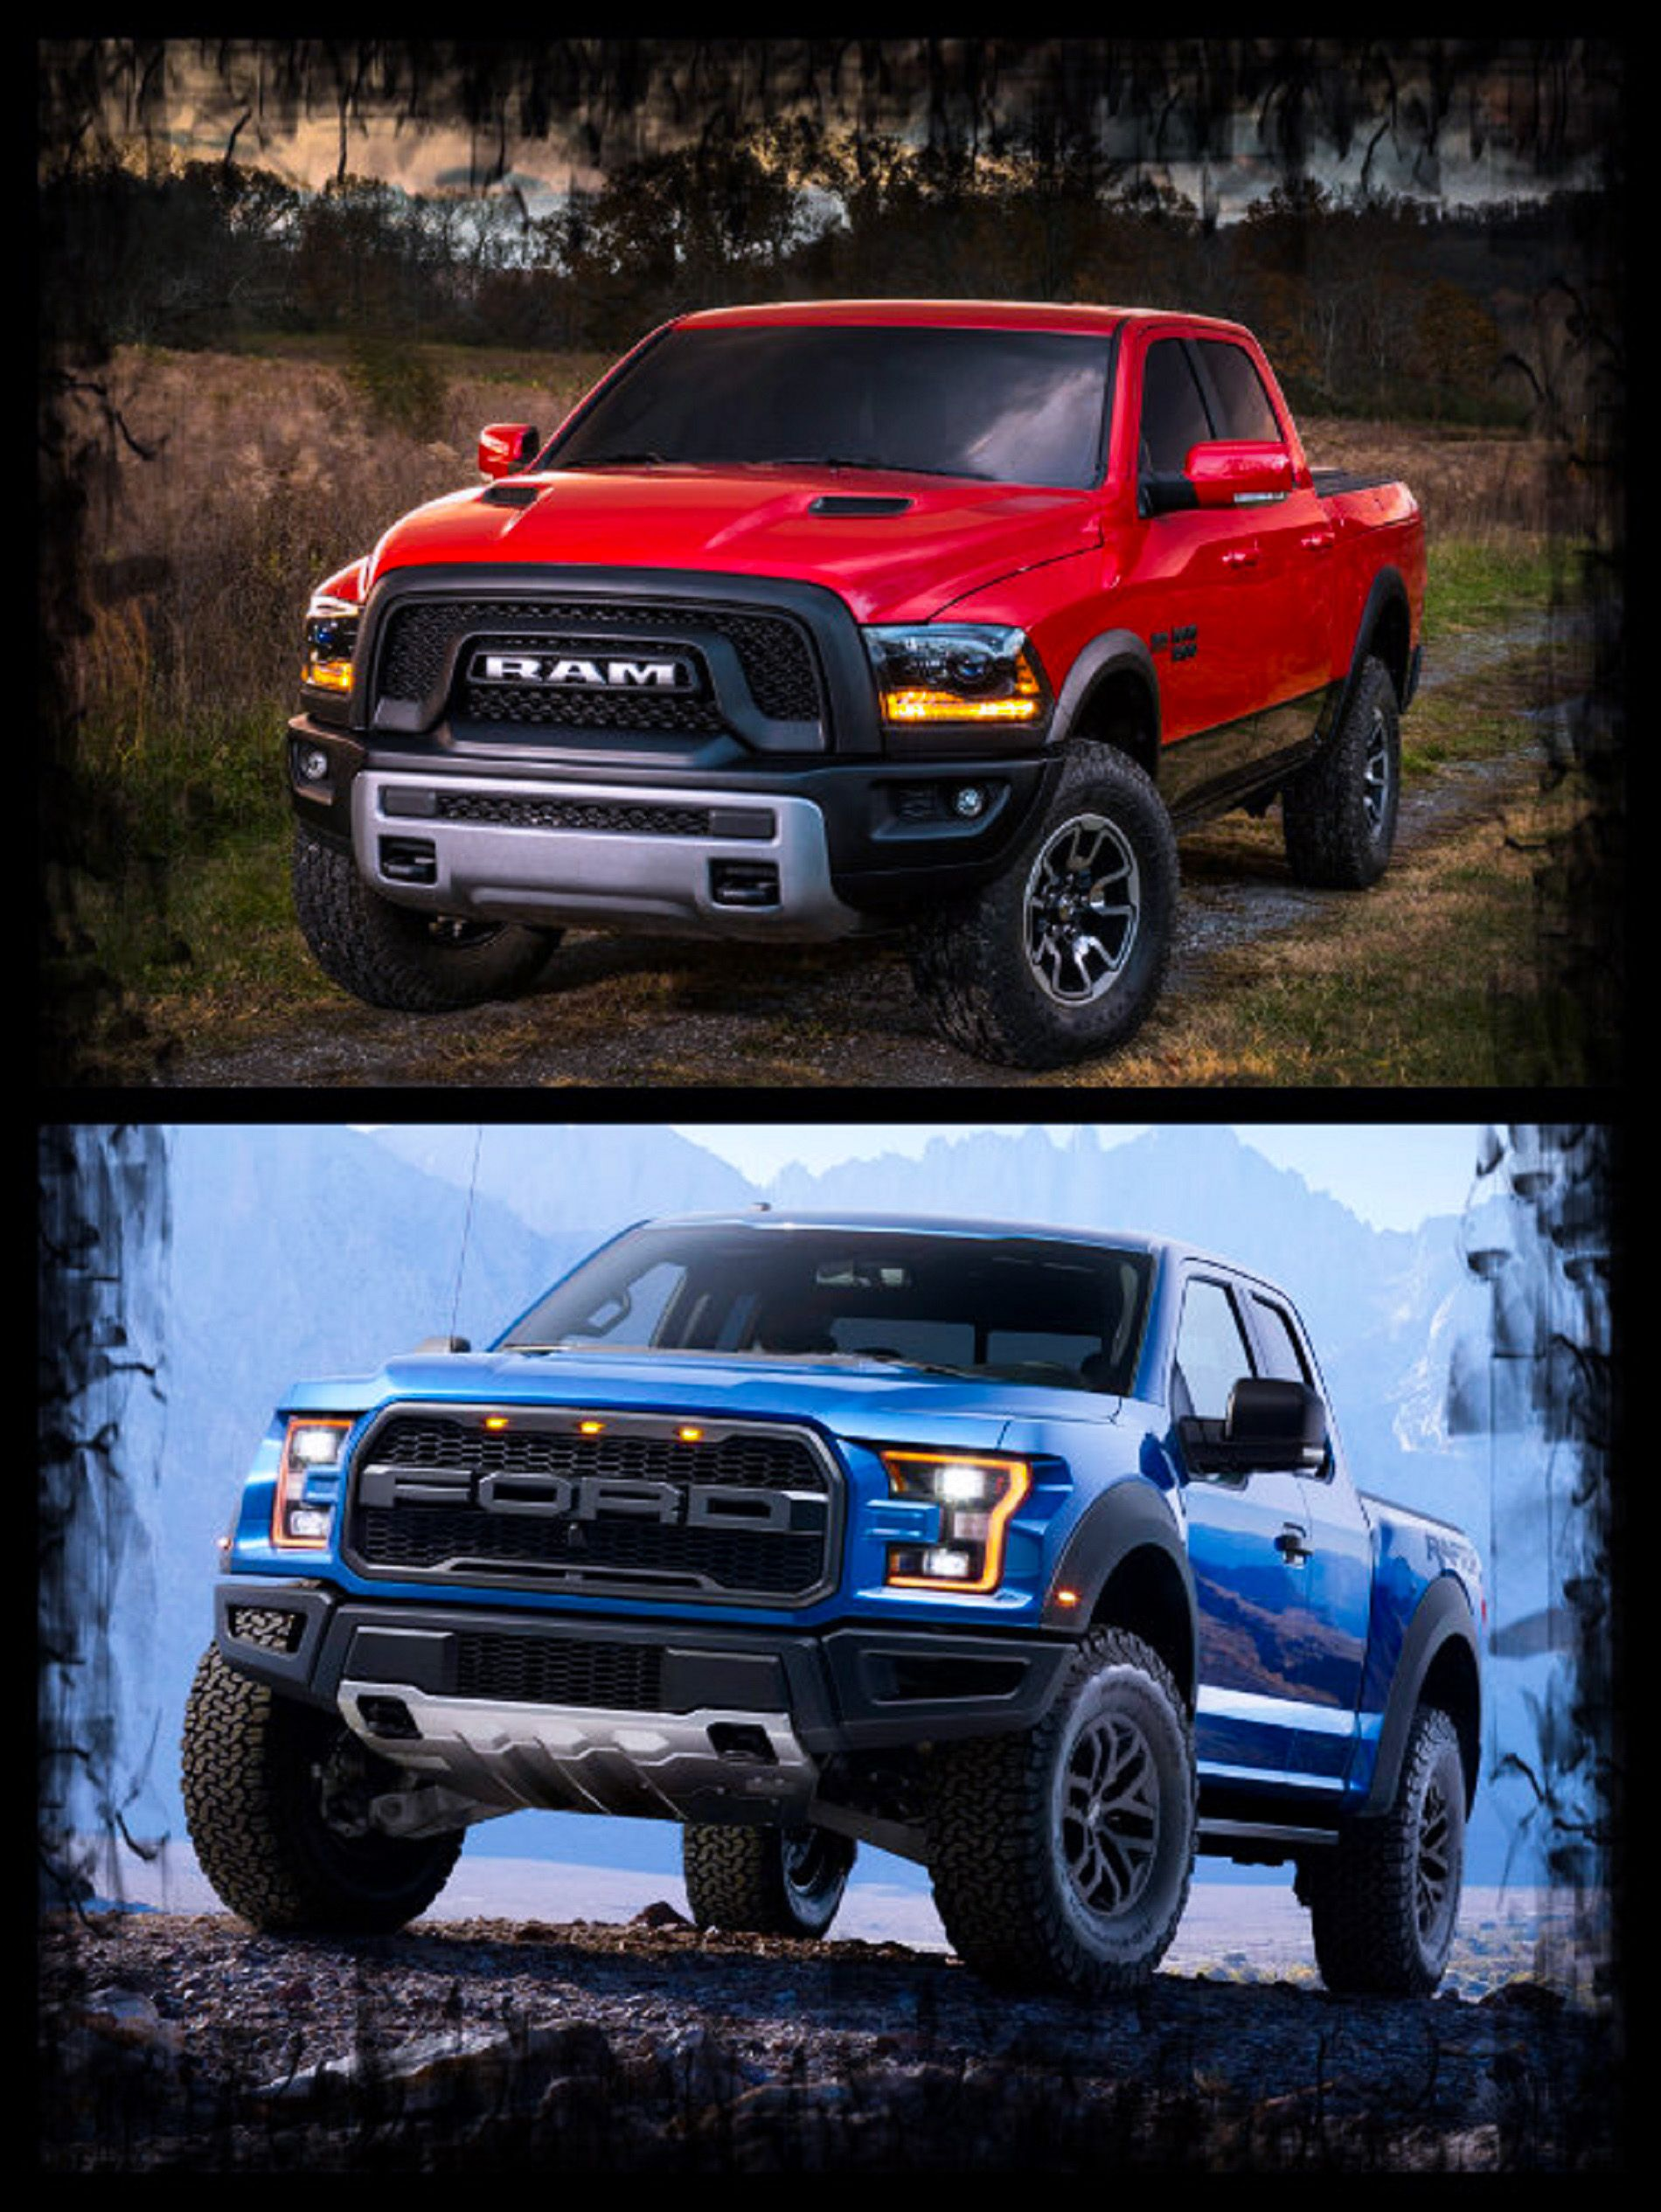 Ford Raptor Vs Ram Rebel on rebel dodge ram truck 2016, fiat pickup truck ram, rebel dodge ram truck 2015,